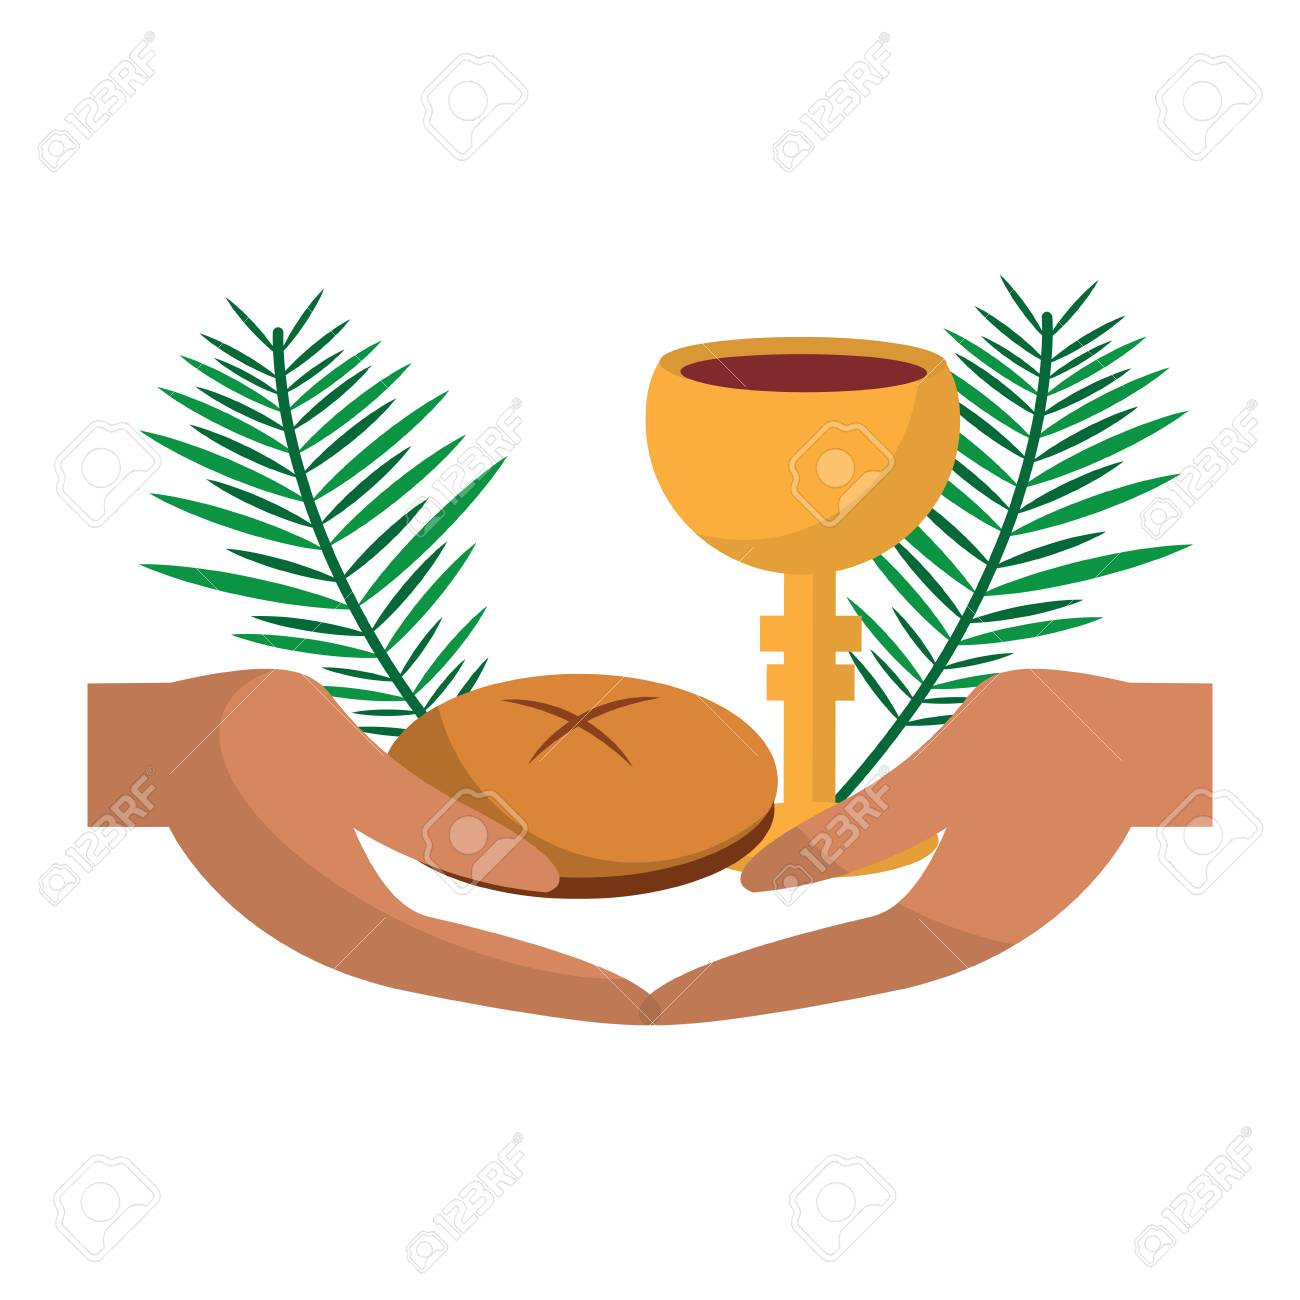 catholic tradition hand bread cup grail and palm branch vector illustration - 96046720